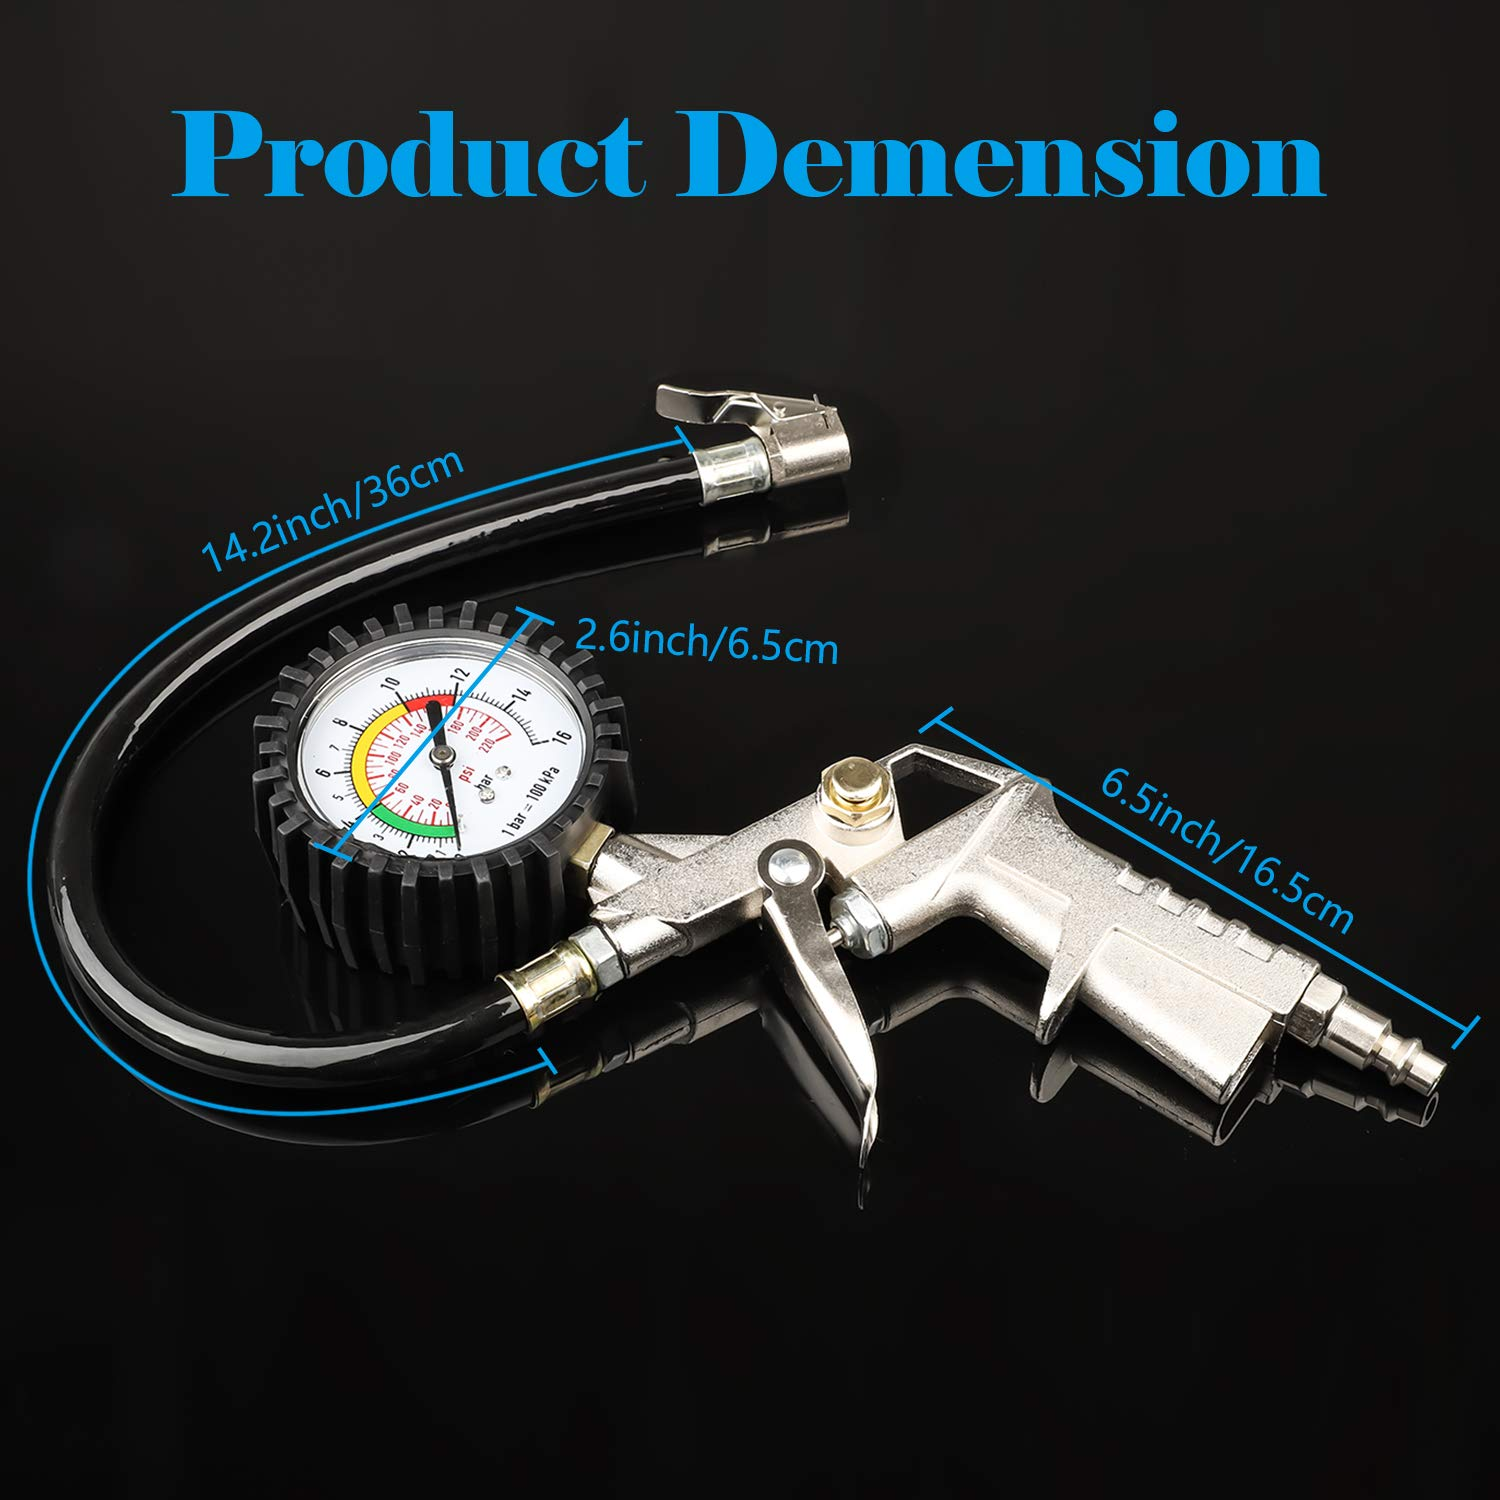 Tire Inflator with Pressure Gauge,Linkstyle 220 PSI Tire Pressure Inflator Gauge with Air Hose Plug Air Chuck with Accurate Gauge for Air Compressors and Inflators